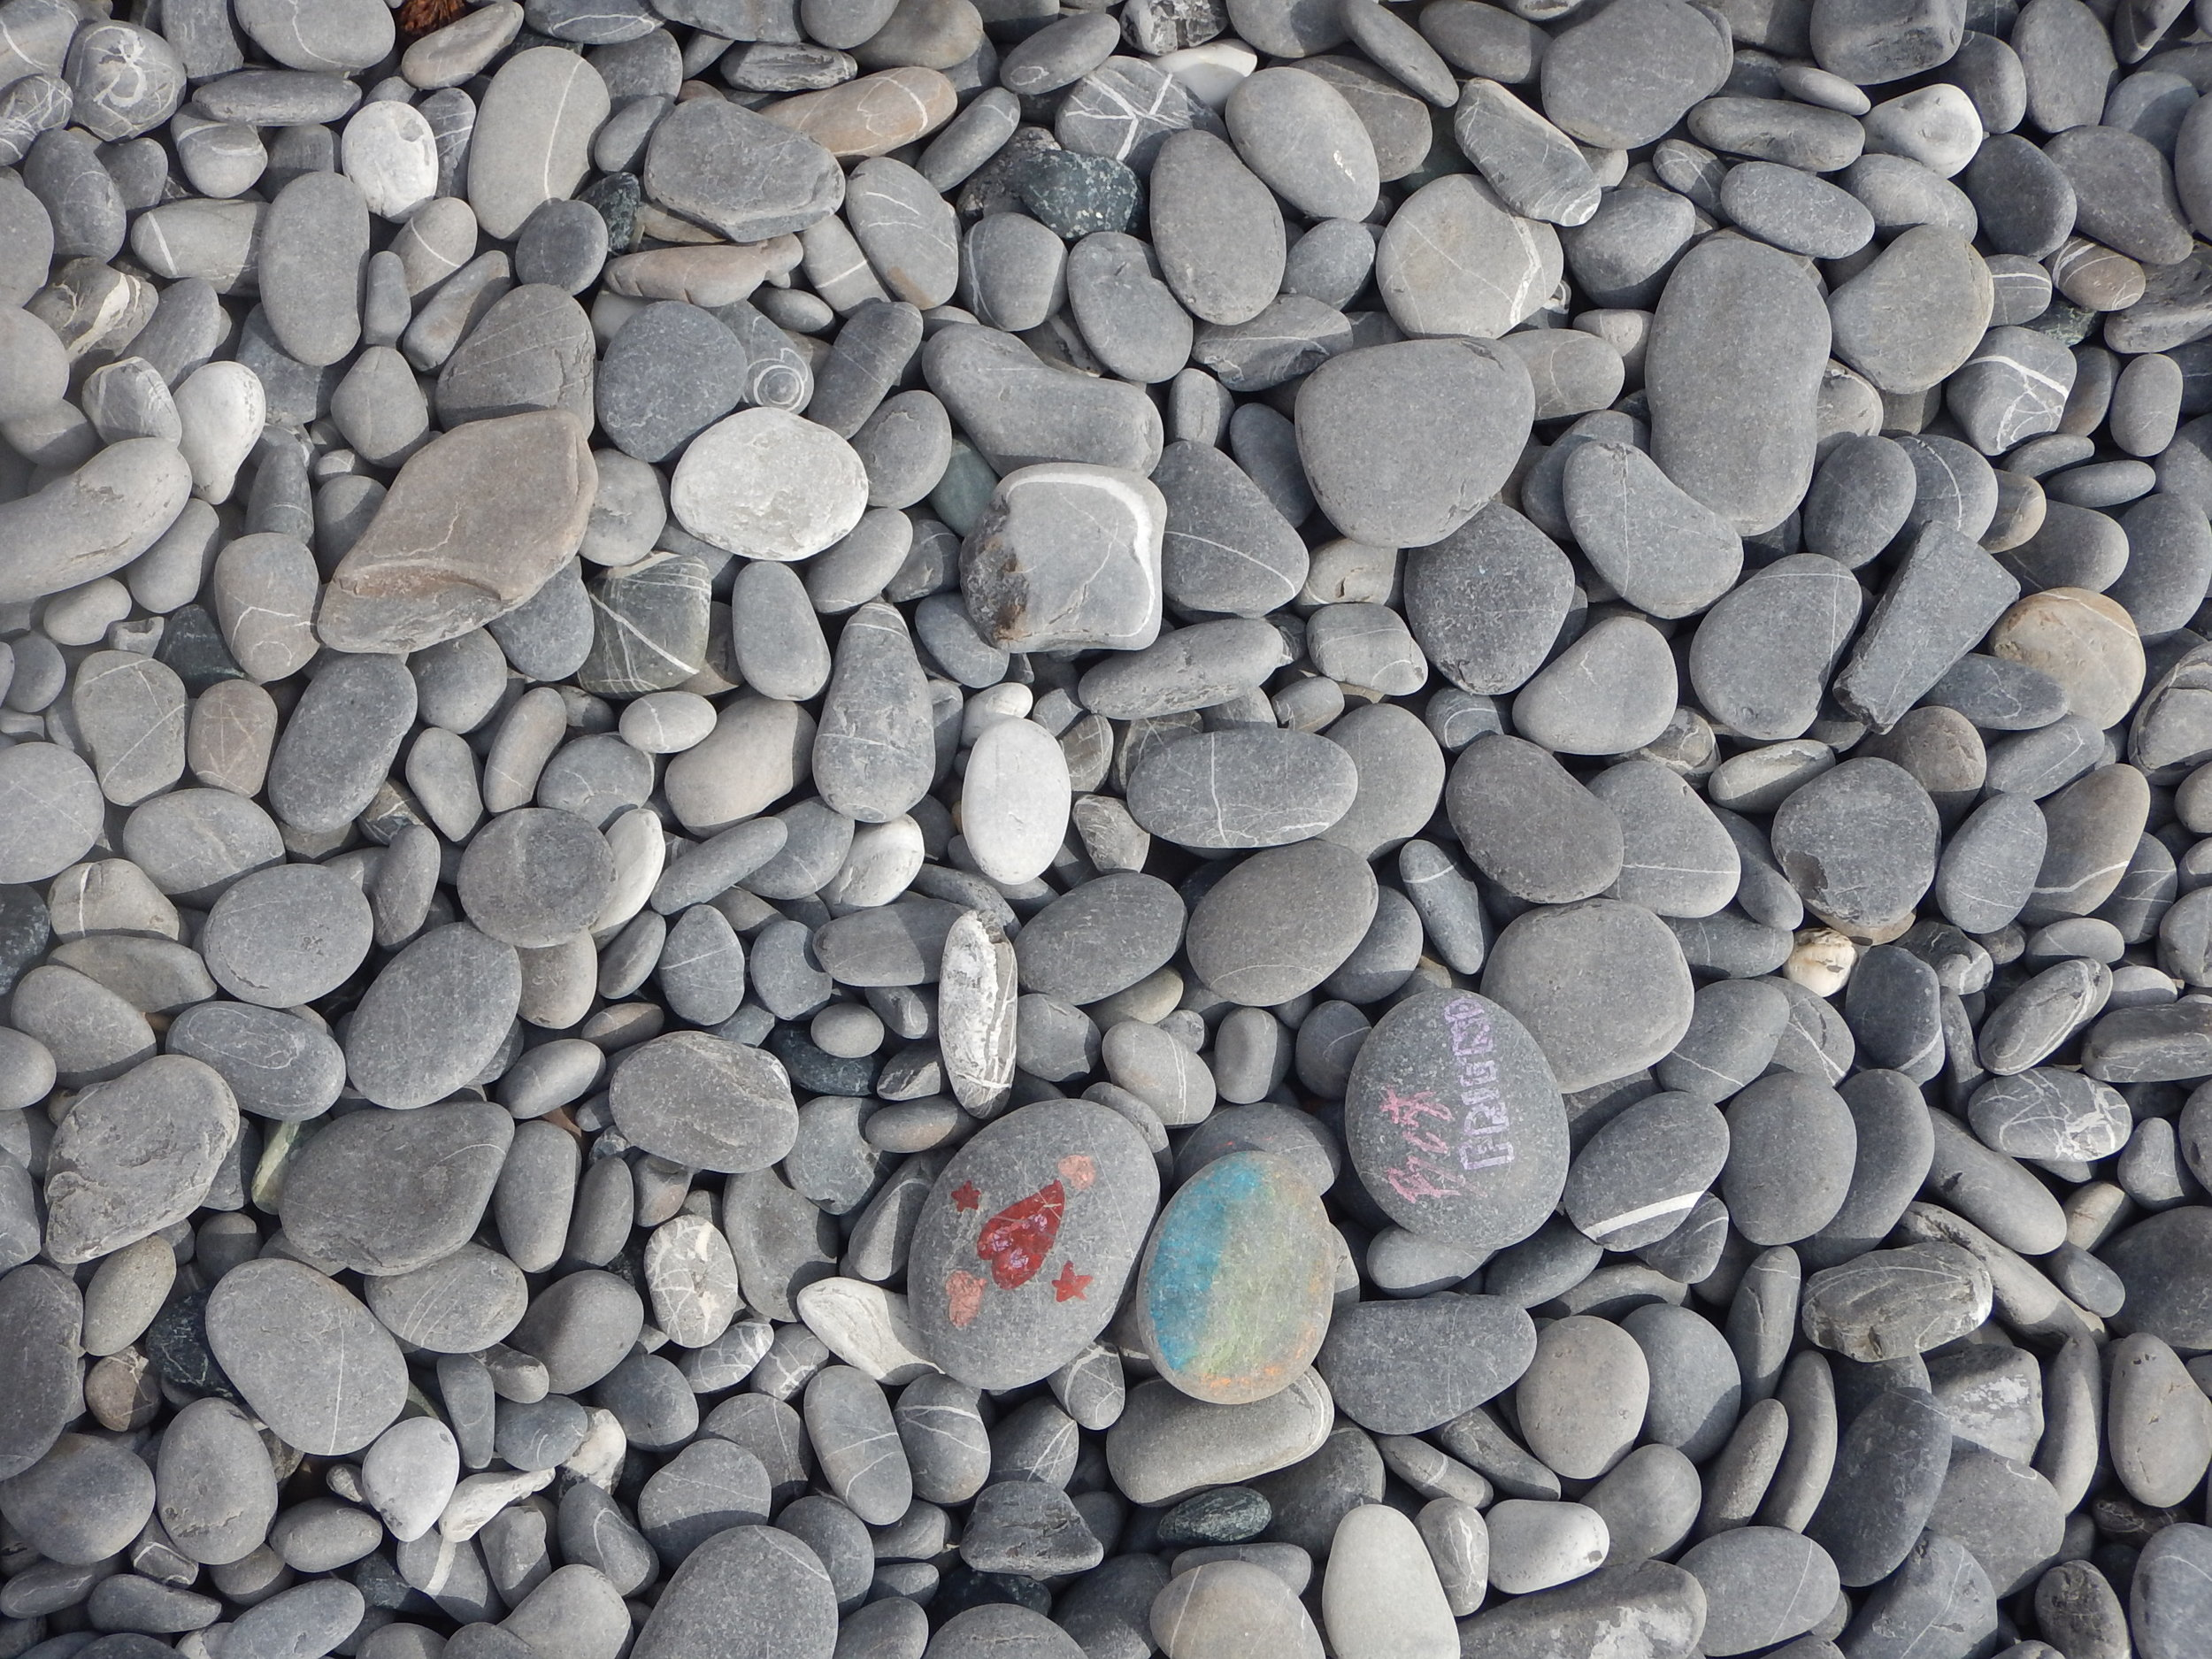 Stones on Camogli beach. Walking on them makes quite a unique tinkle. Like walking on small cardboard boxes.